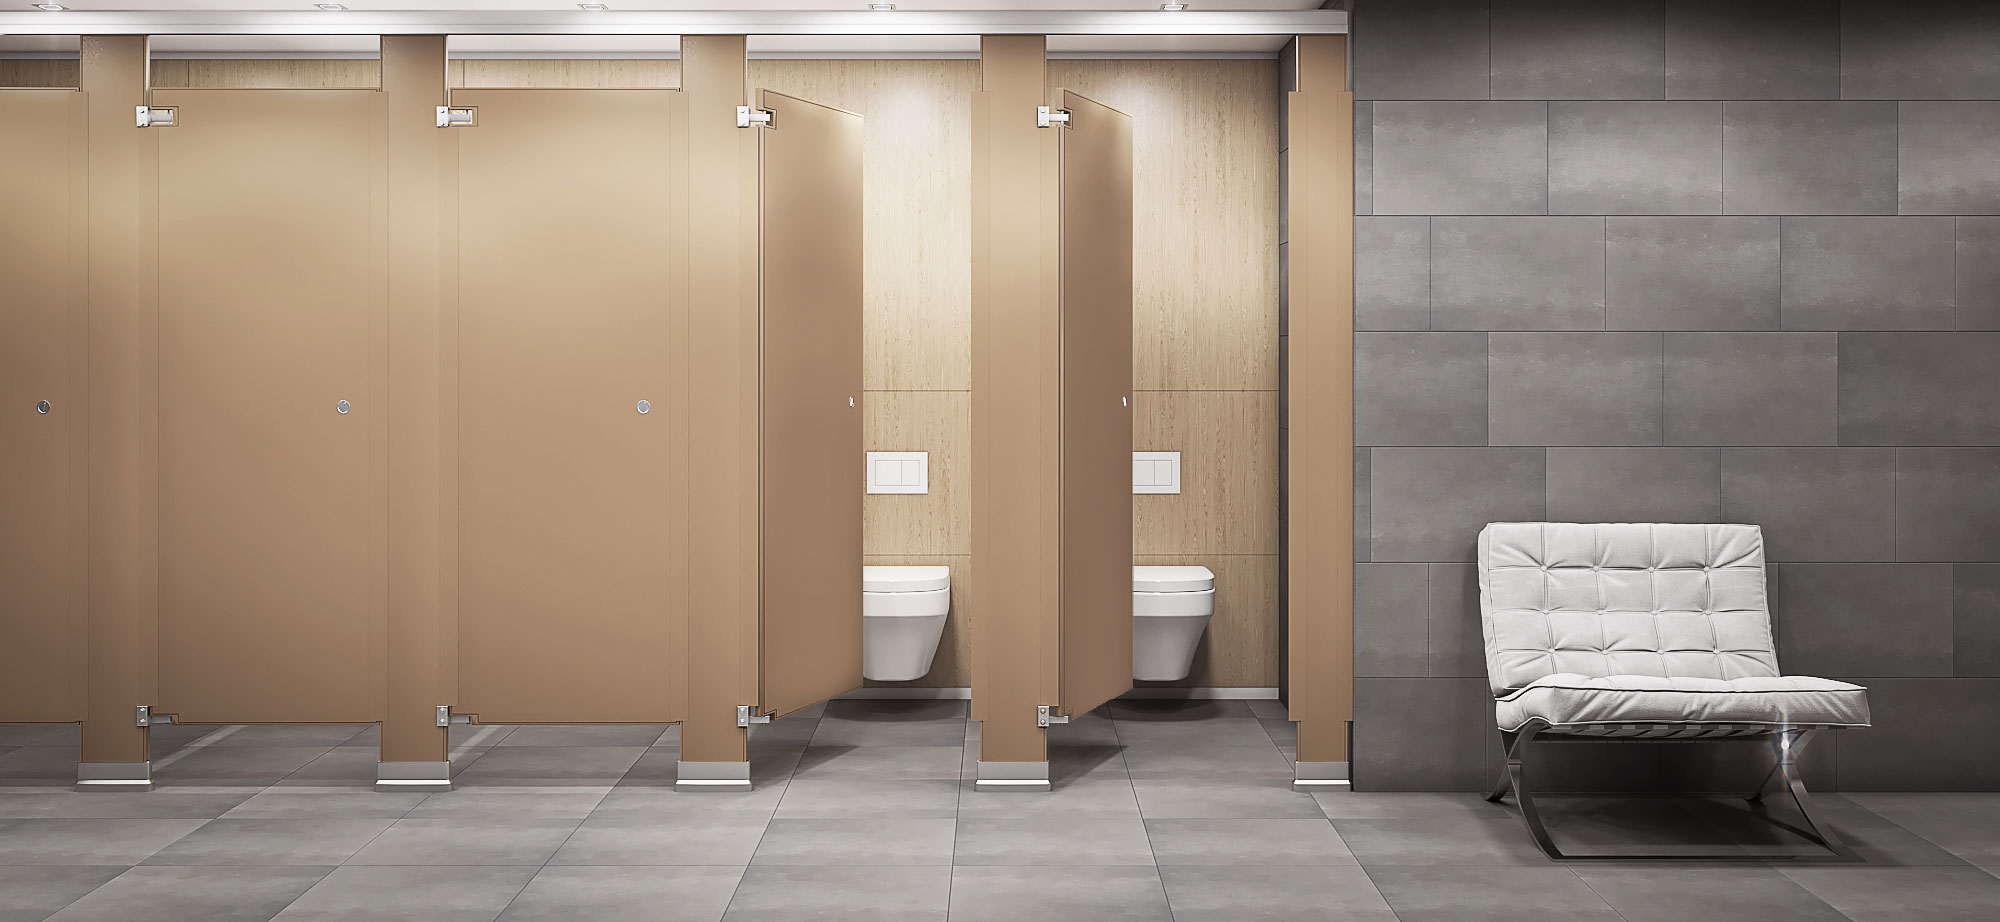 Bathroom Partitions | Experience you can rely on